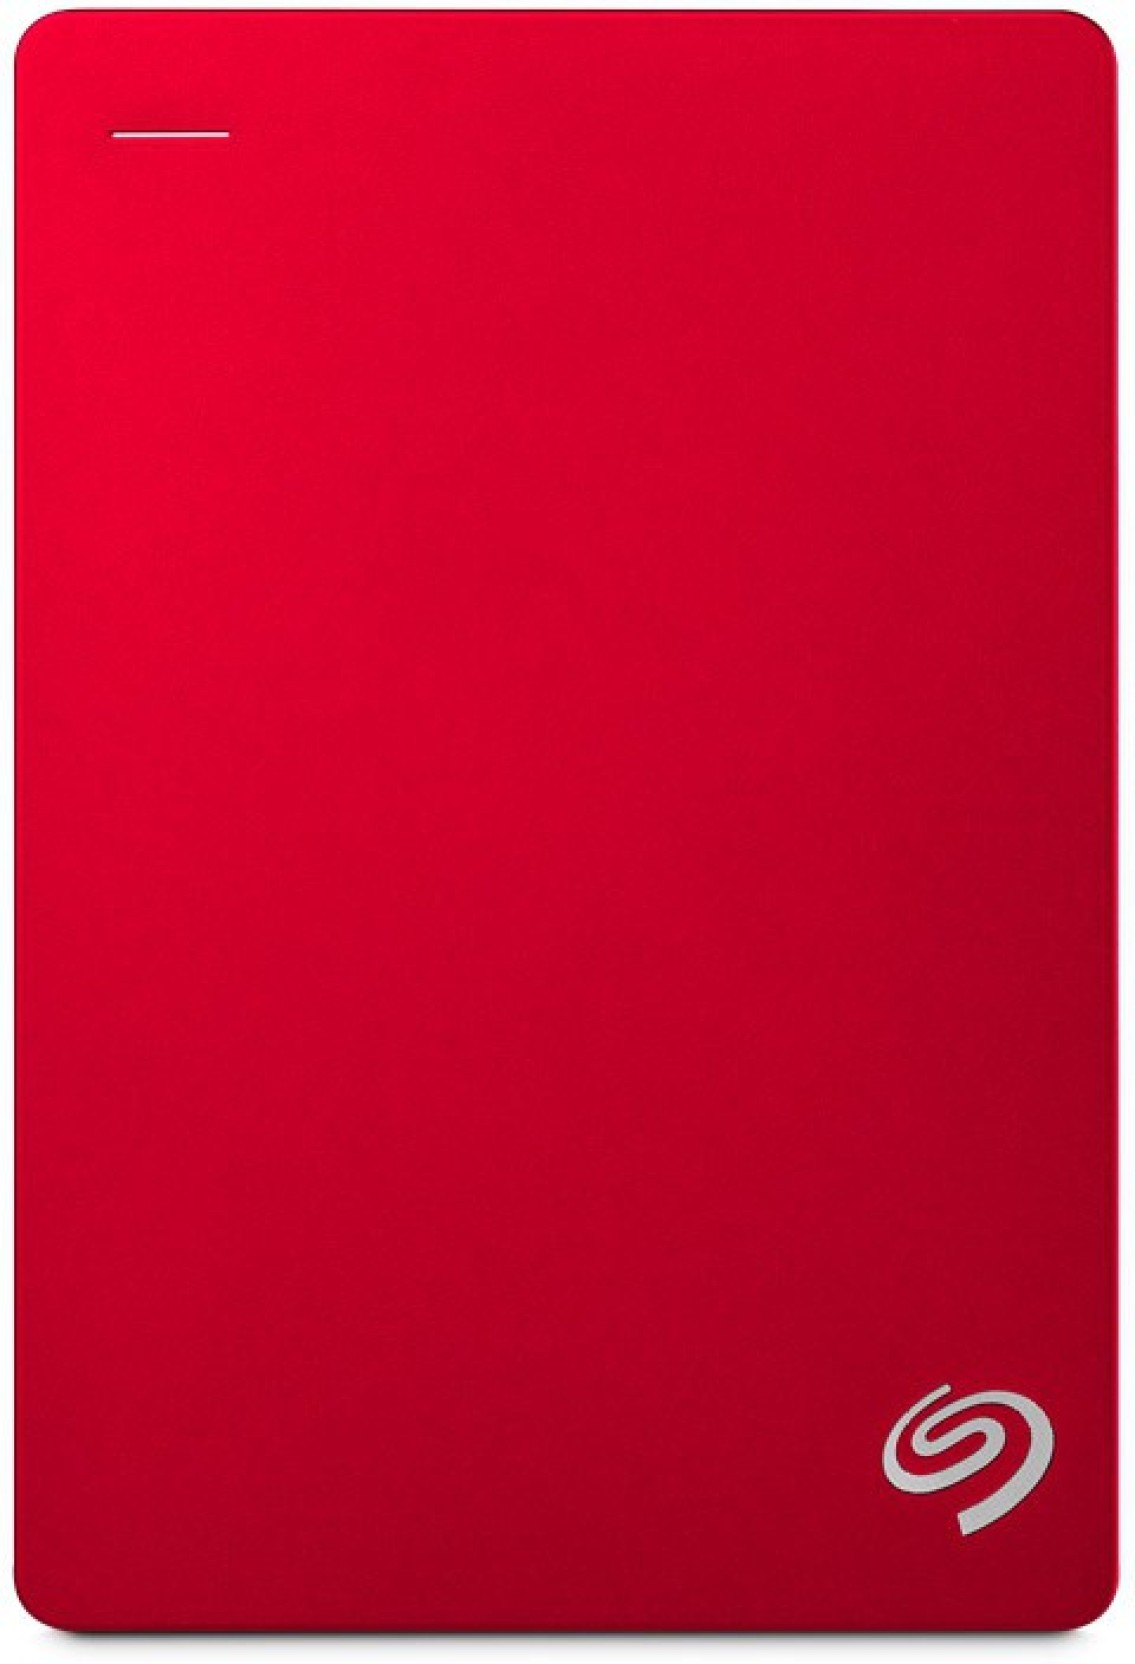 Seagate Backup Plus Portable Drive 4 Tb External Hard Disk Slim 1tb Red Add To Cart